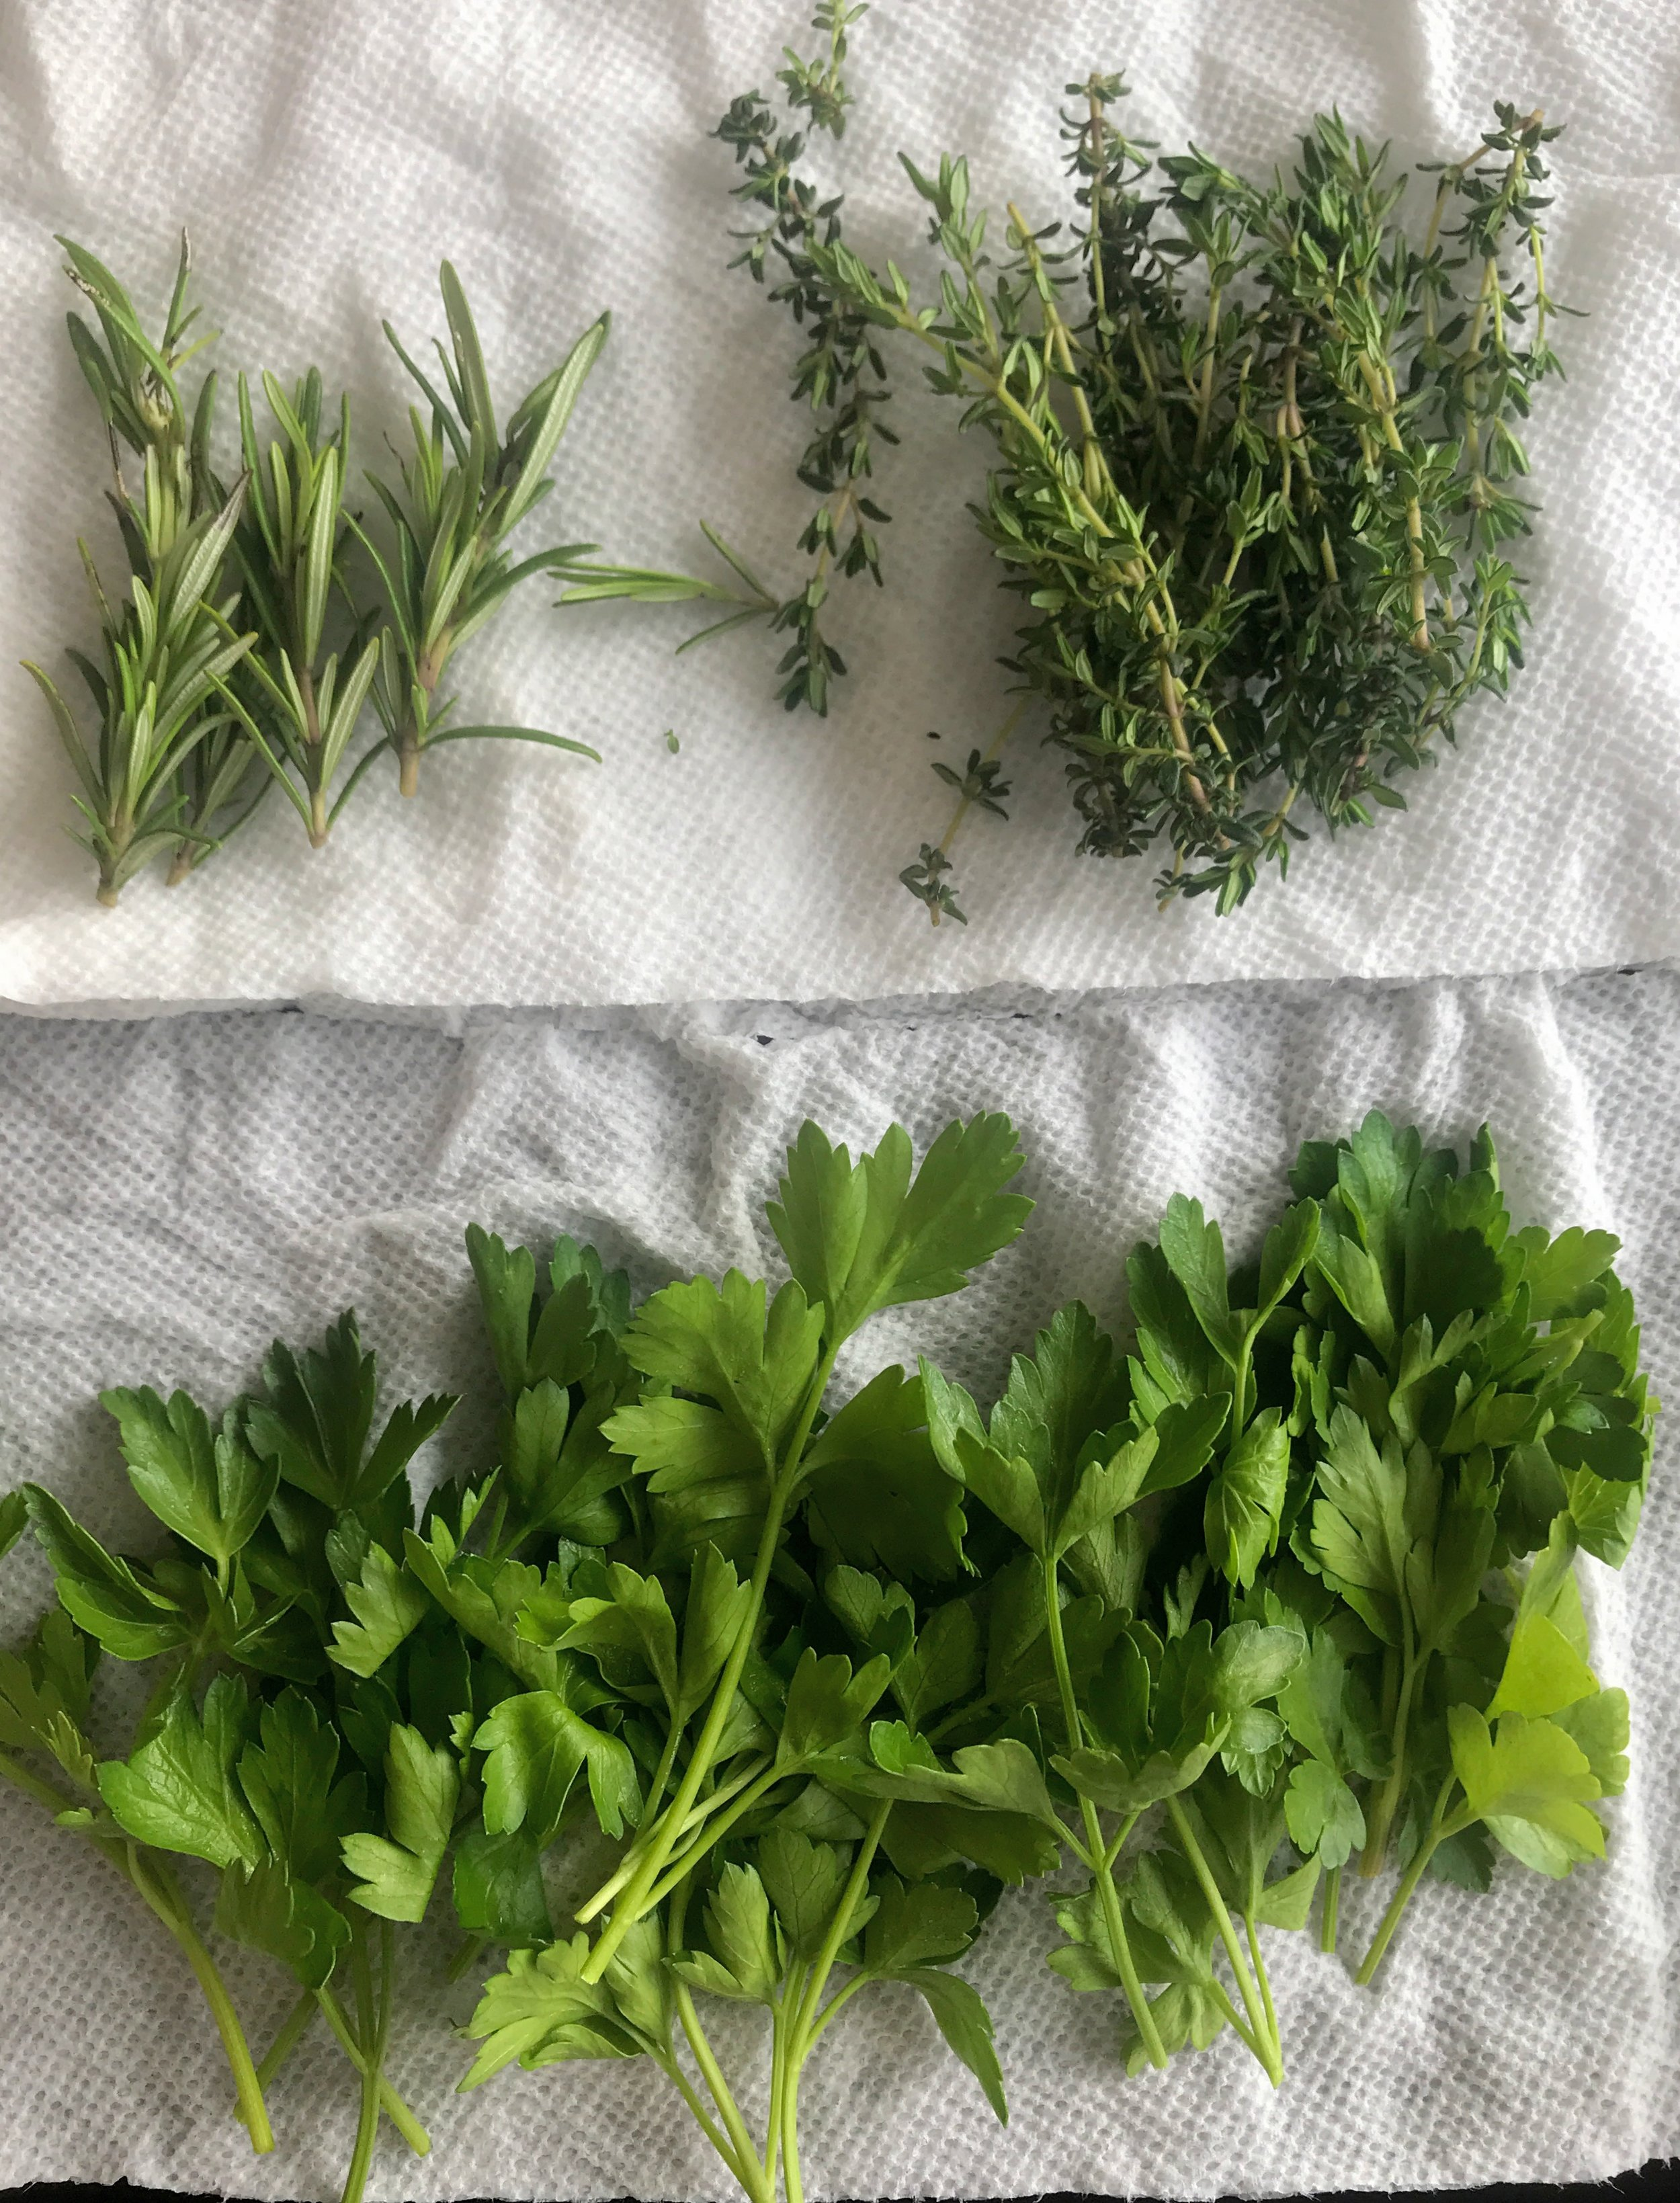 Rosemary, Parsley and Thyme ready to go for our Infused Pesto! These were grown by our lovely boo, Sebastopol Ben!